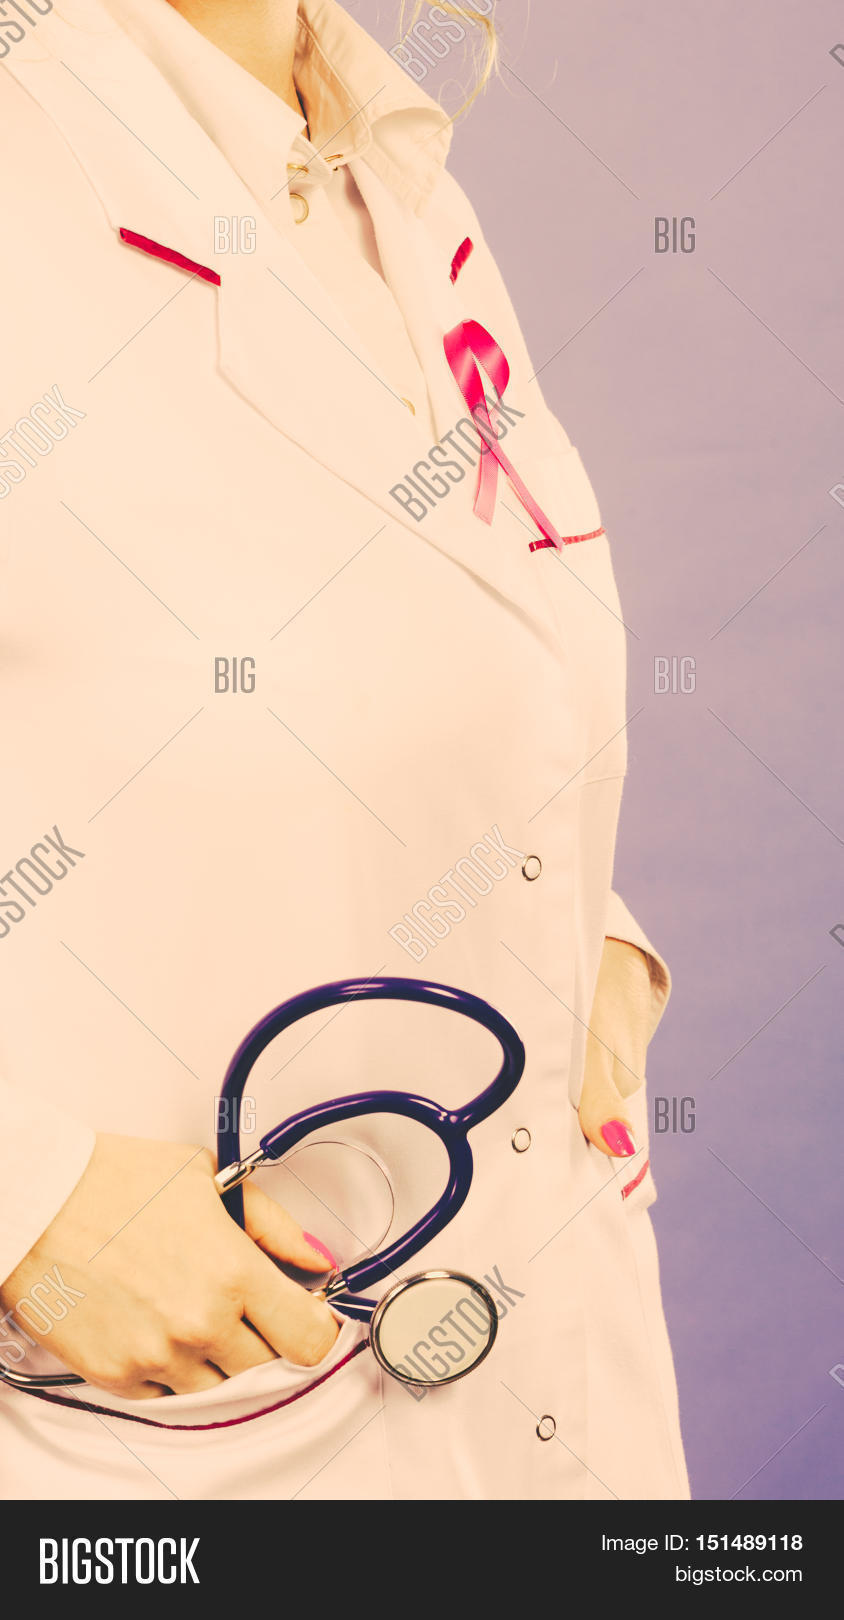 White apron health - Women Fight For Health Breast Cancer Tumor Concept Pink Ribbon On White Medical Apron